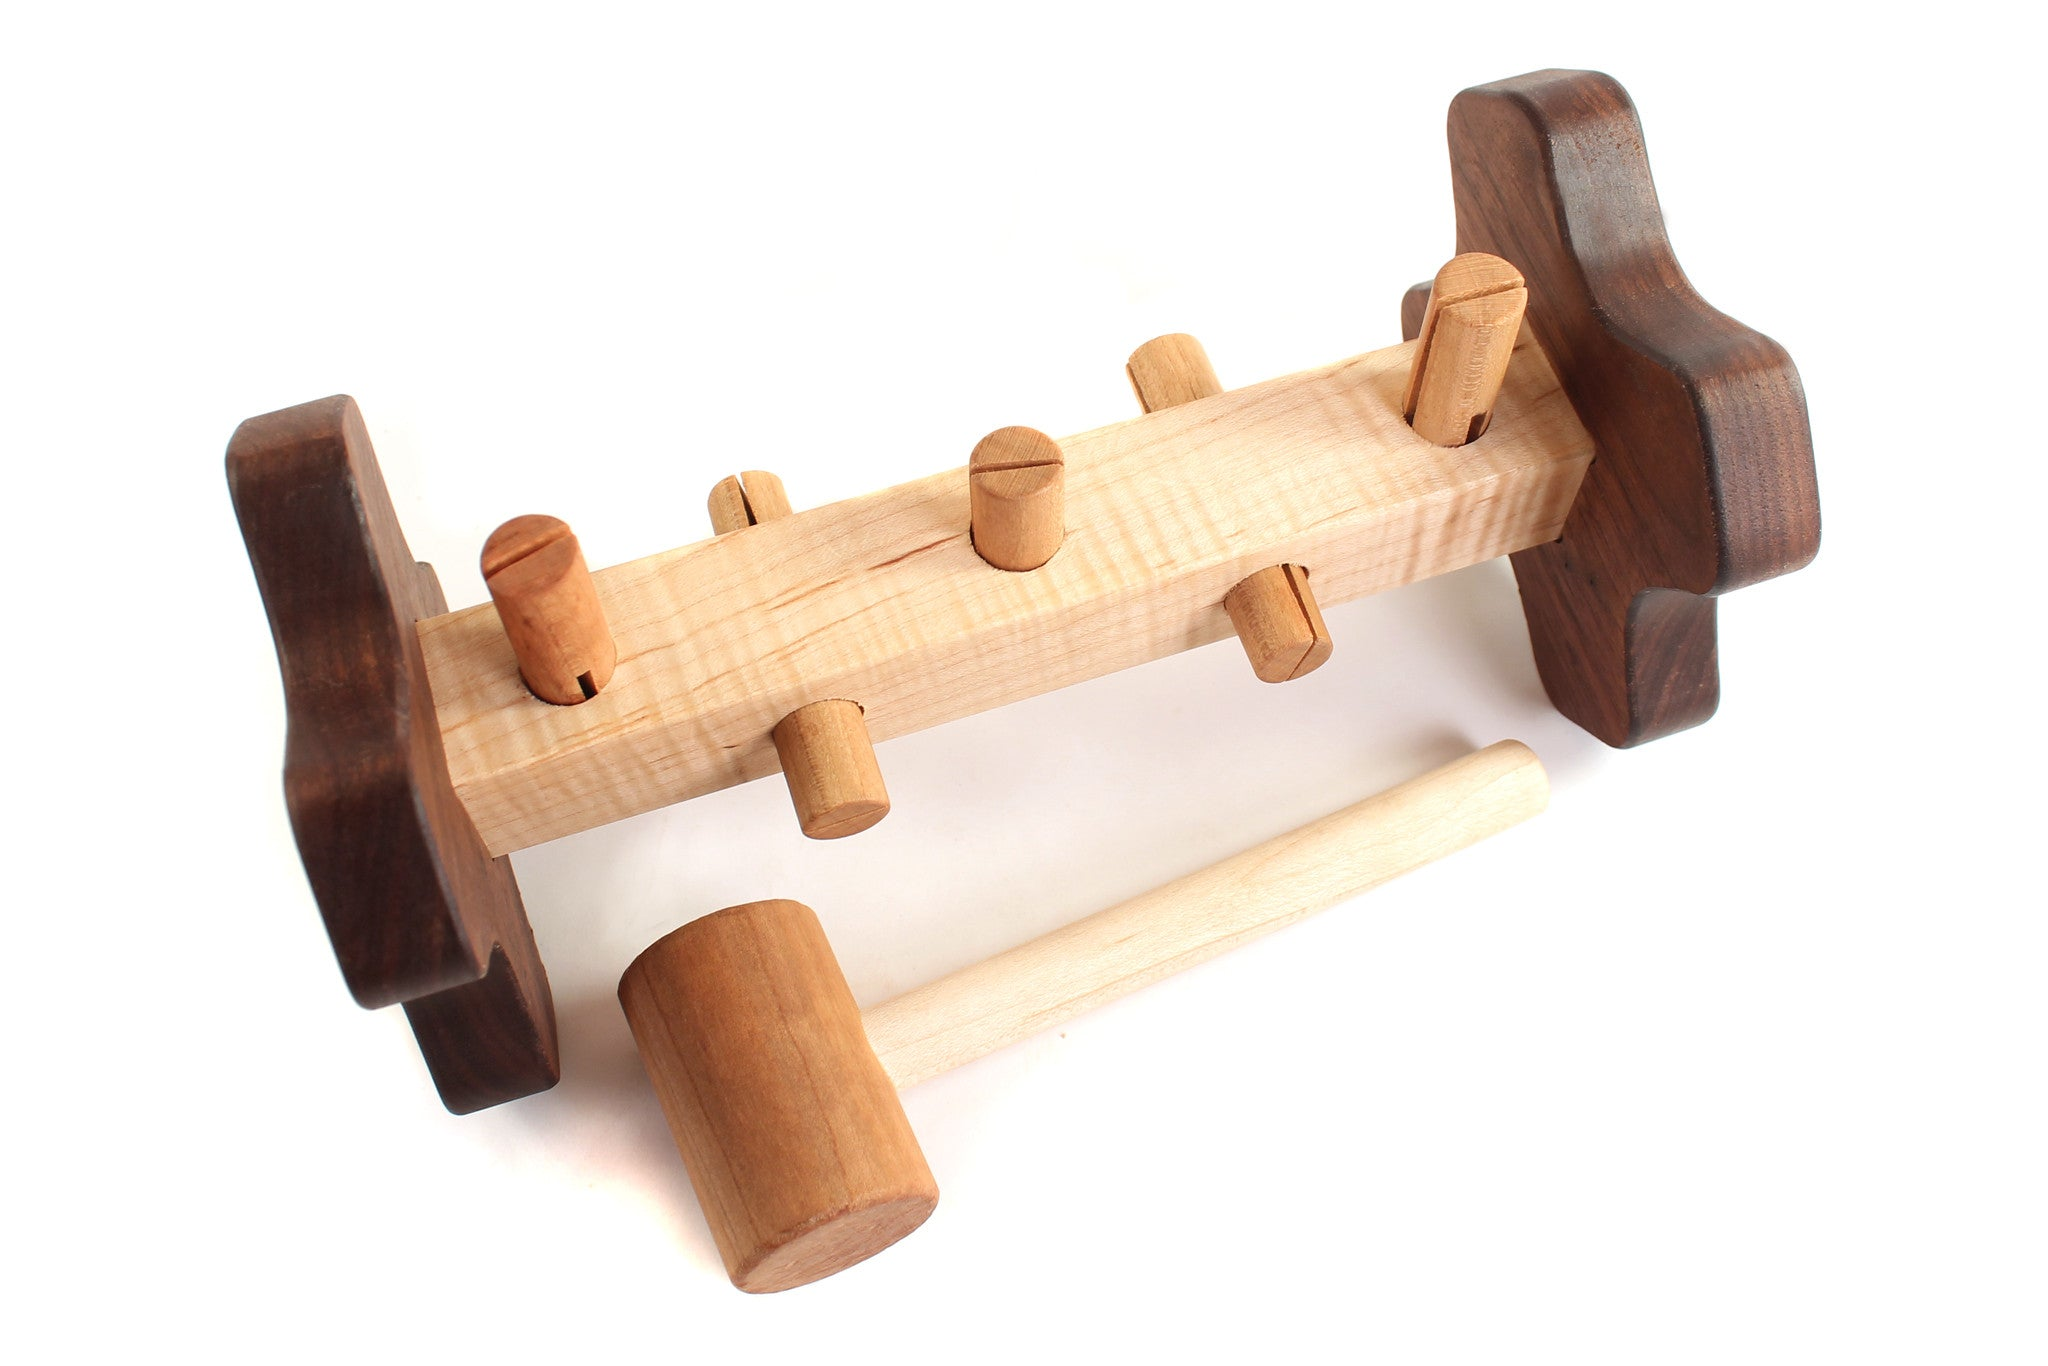 wooden peg pounding toy Smiling Tree